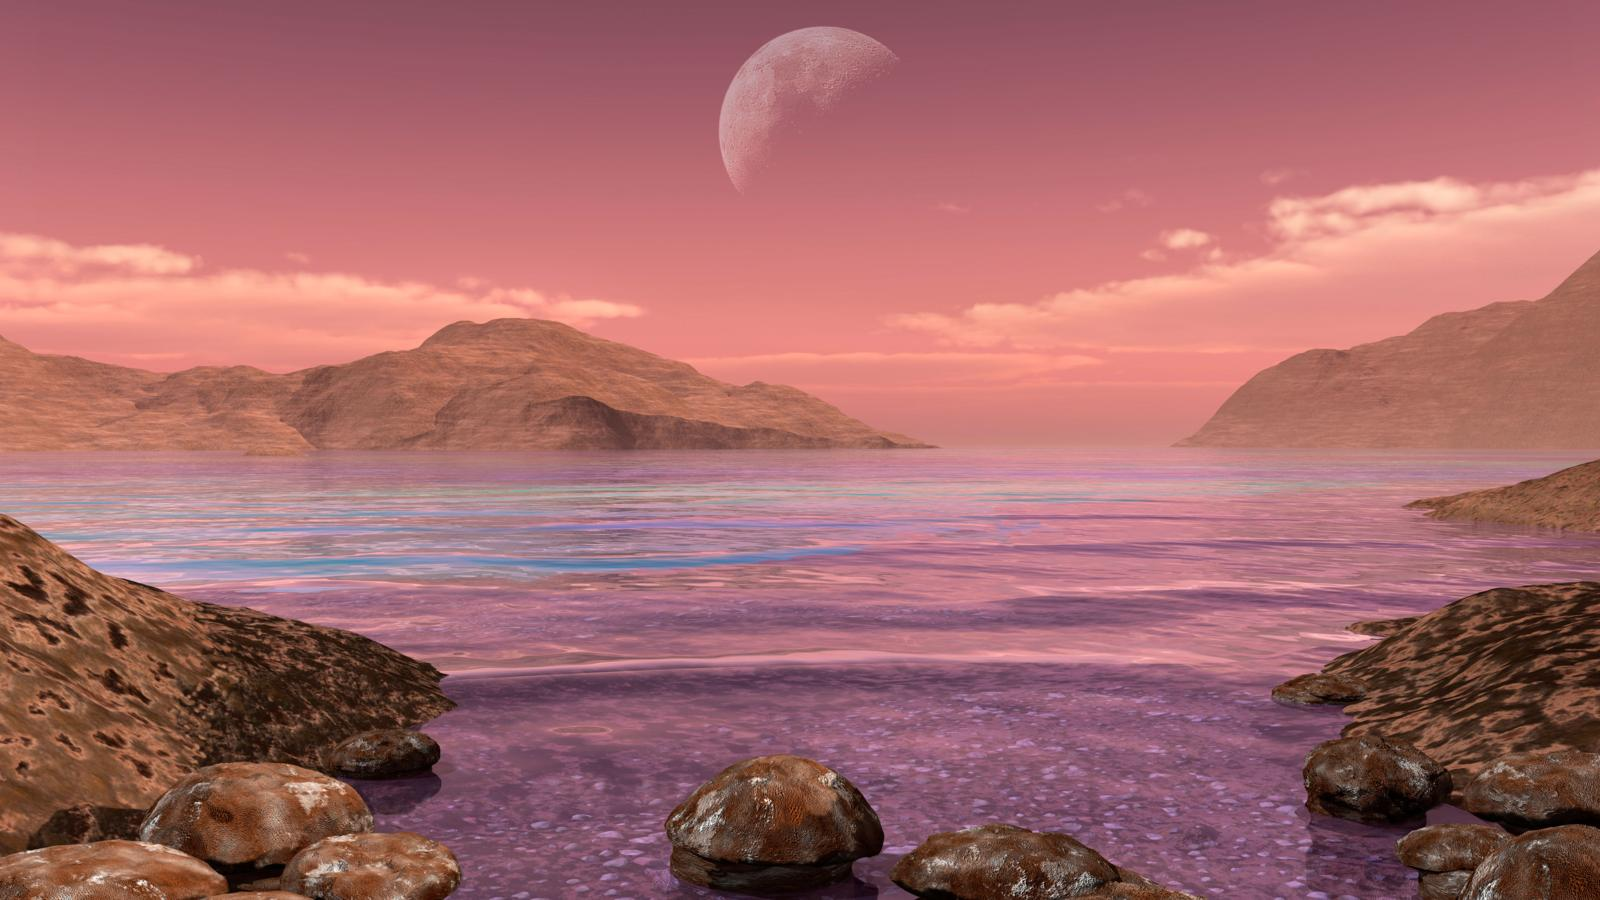 Artist's concept of Archean stromatolites on the shore of an ancient sea.